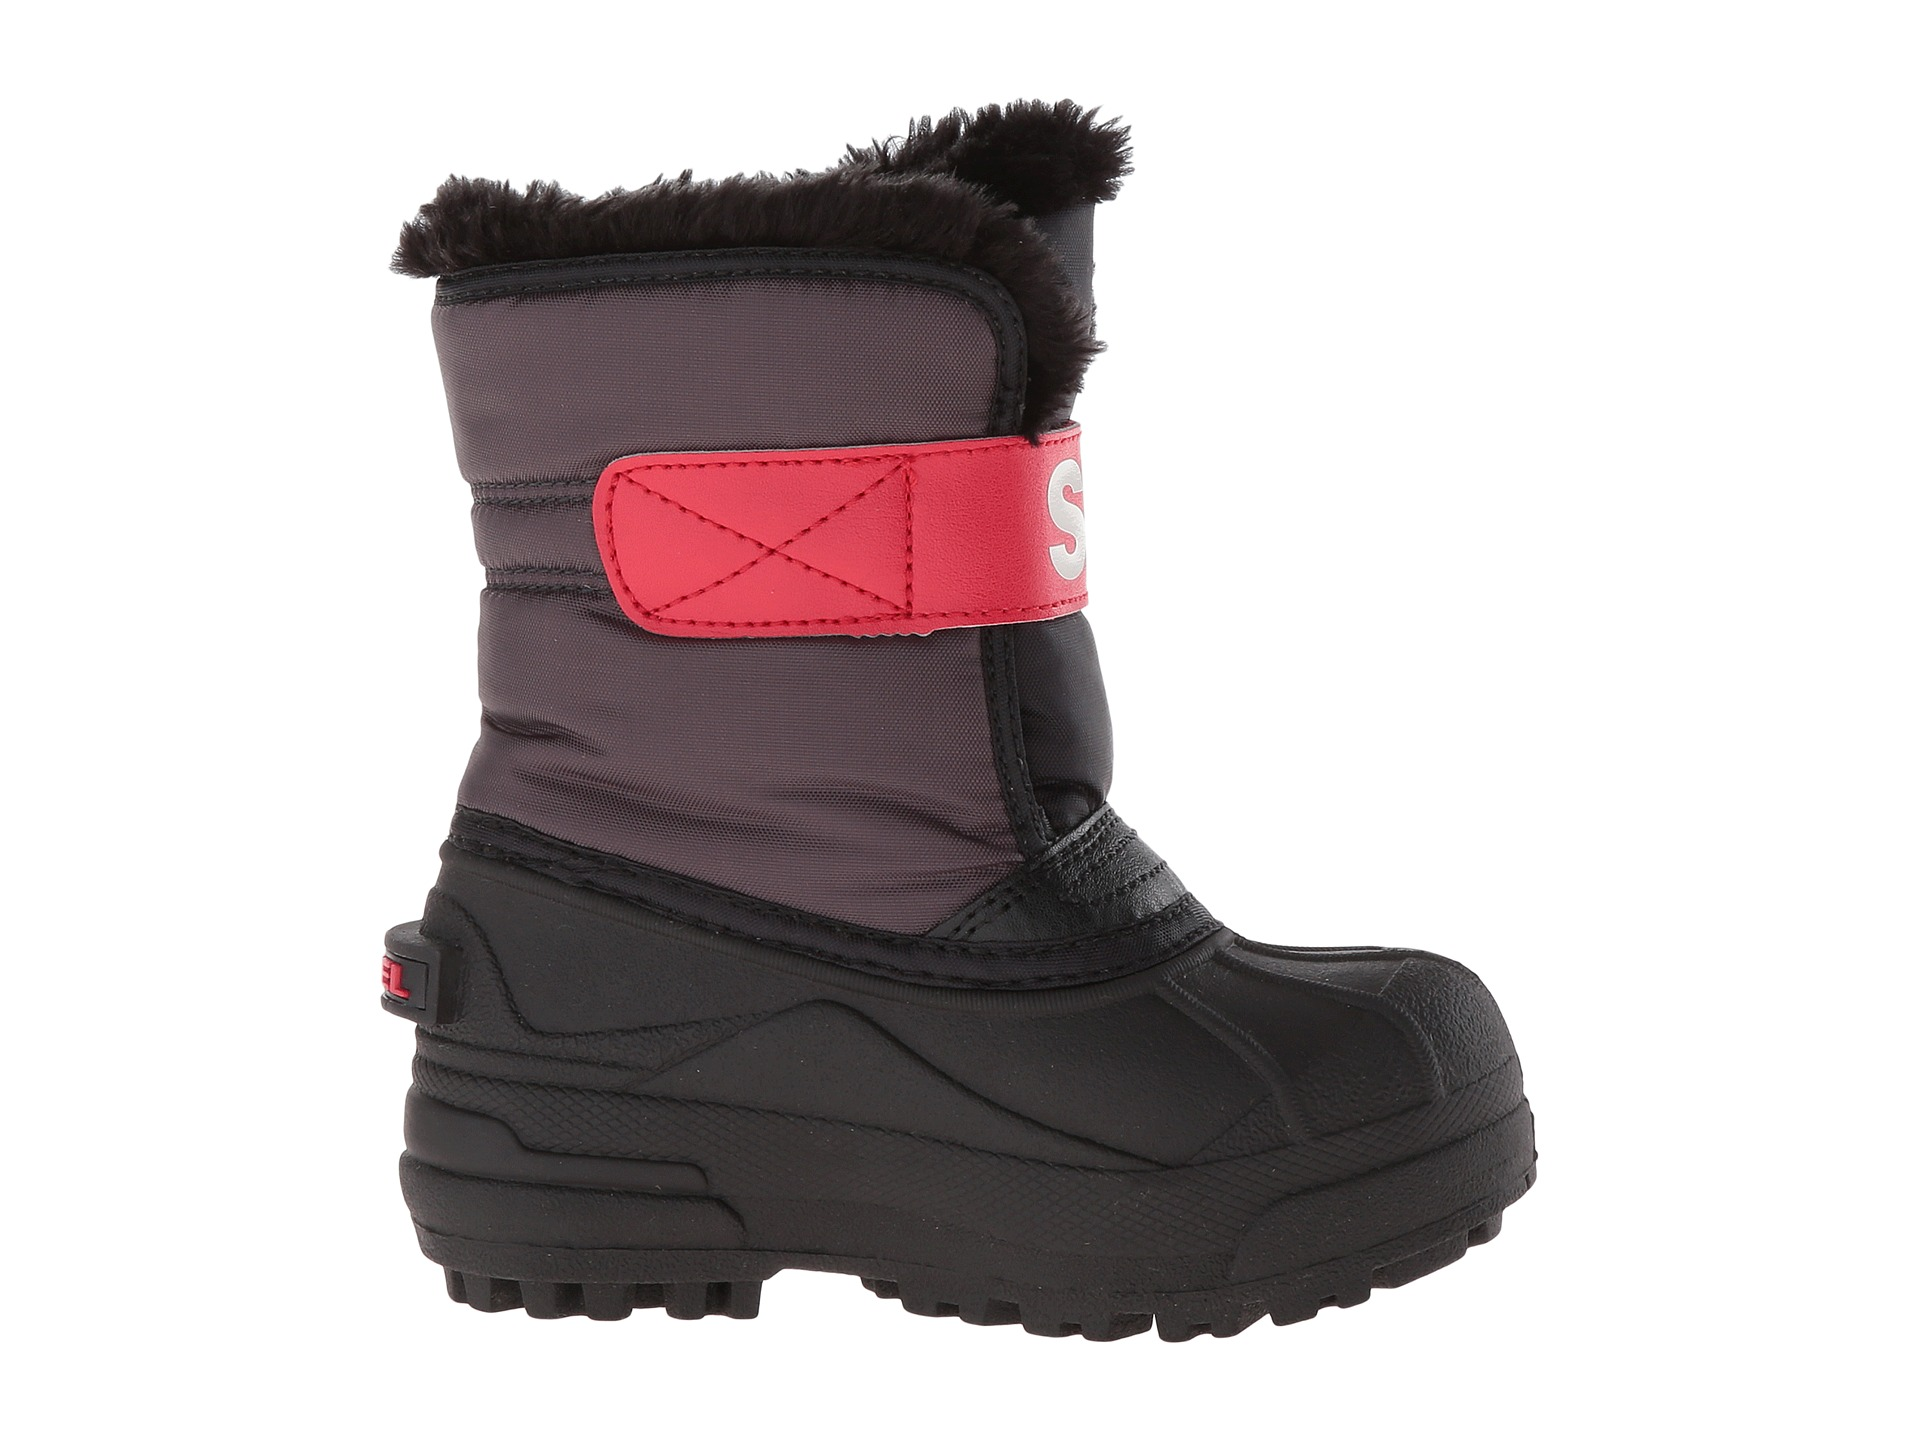 Extra Wide Snow Boots For Toddlers | Santa Barbara Institute for ...